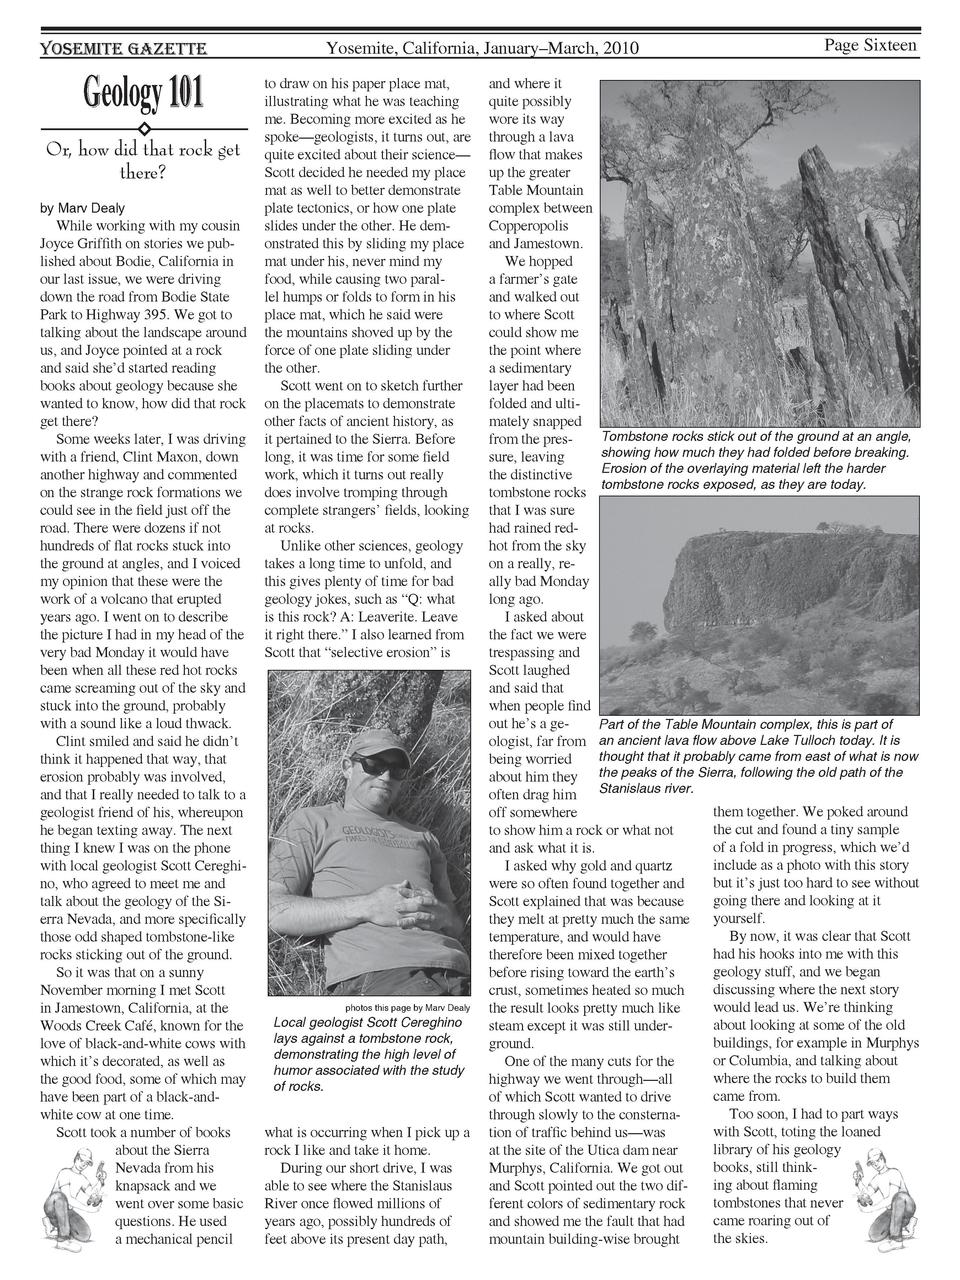 Yosemite Gazette  Geology 101 Or, how did that rock get there  by Marv Dealy  While working with my cousin Joyce Griffith ...